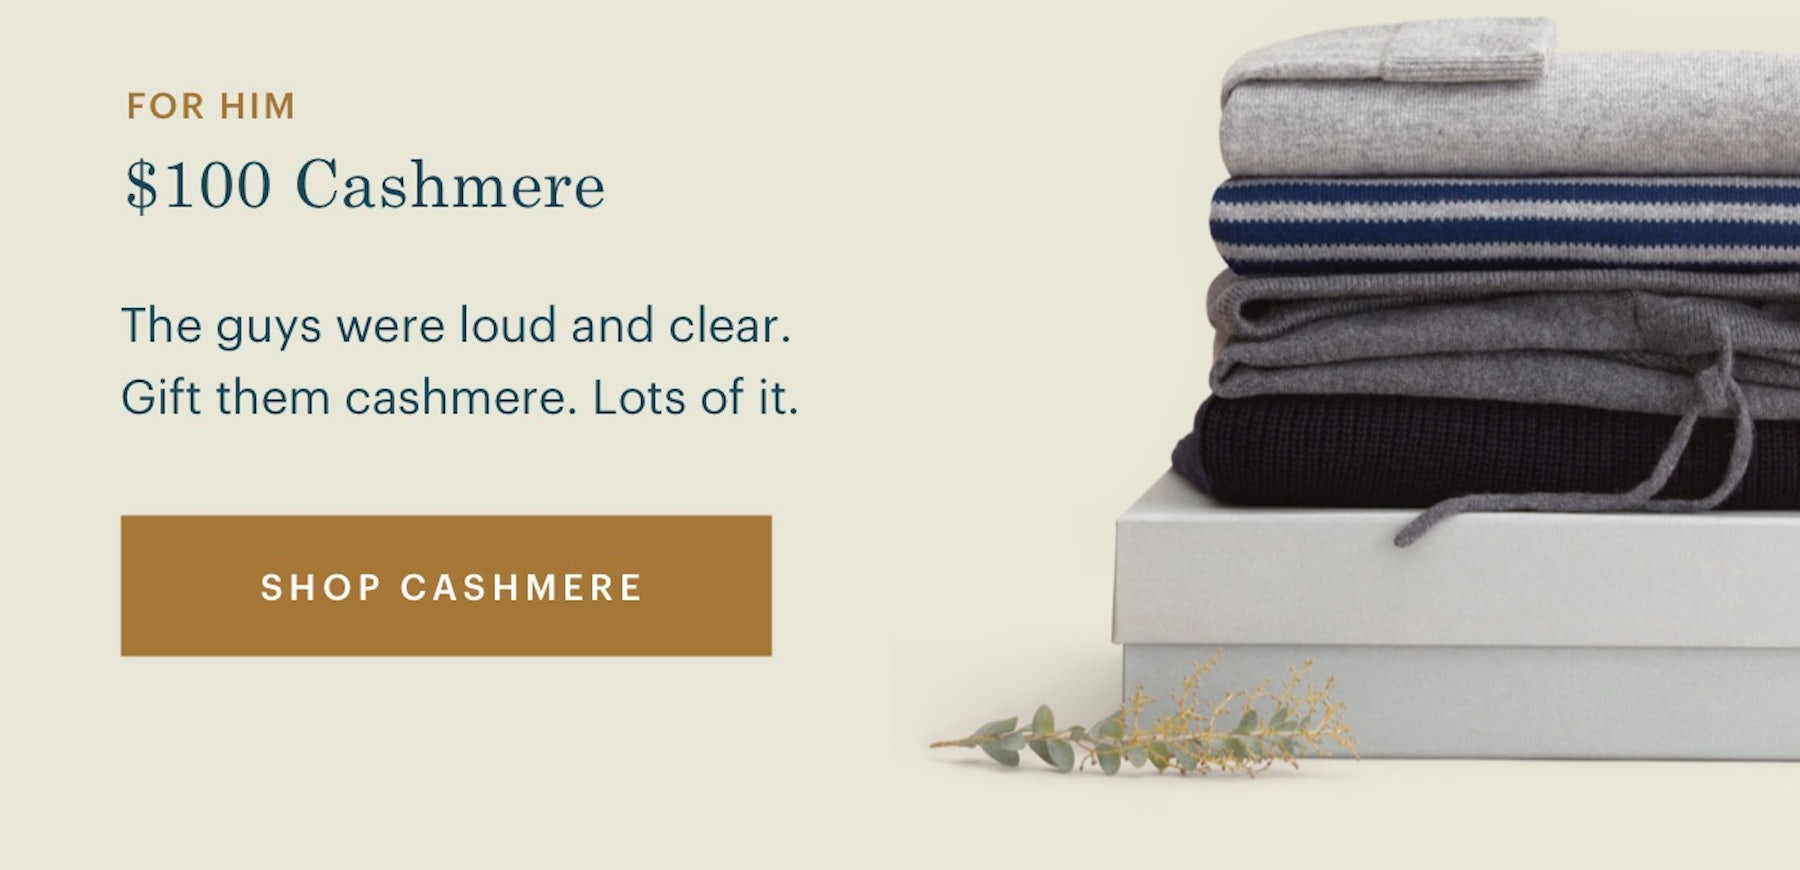 $100 Cashmere. The guys were loud and clear. Gift them cashmere. Lots of it.